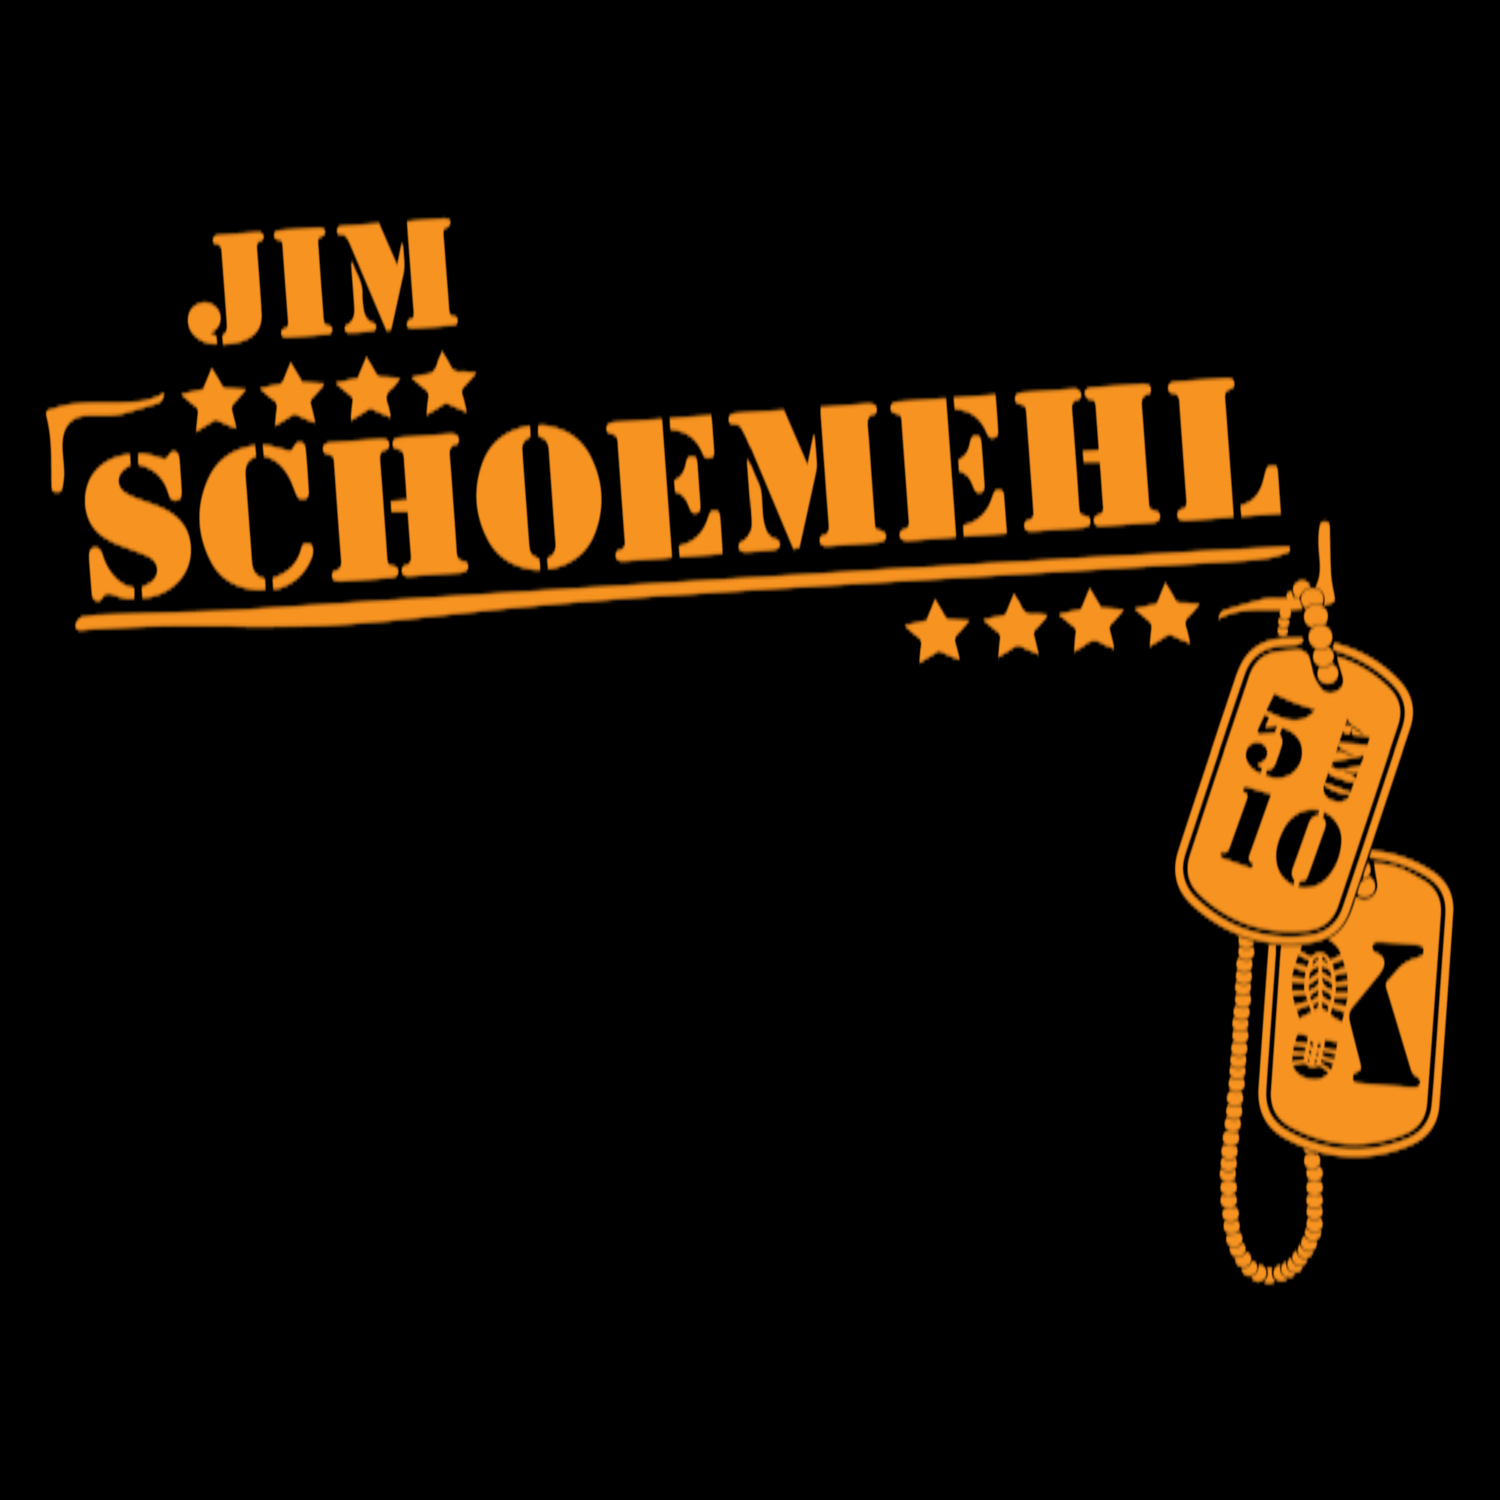 Jim Schoemehl 5/10k Run